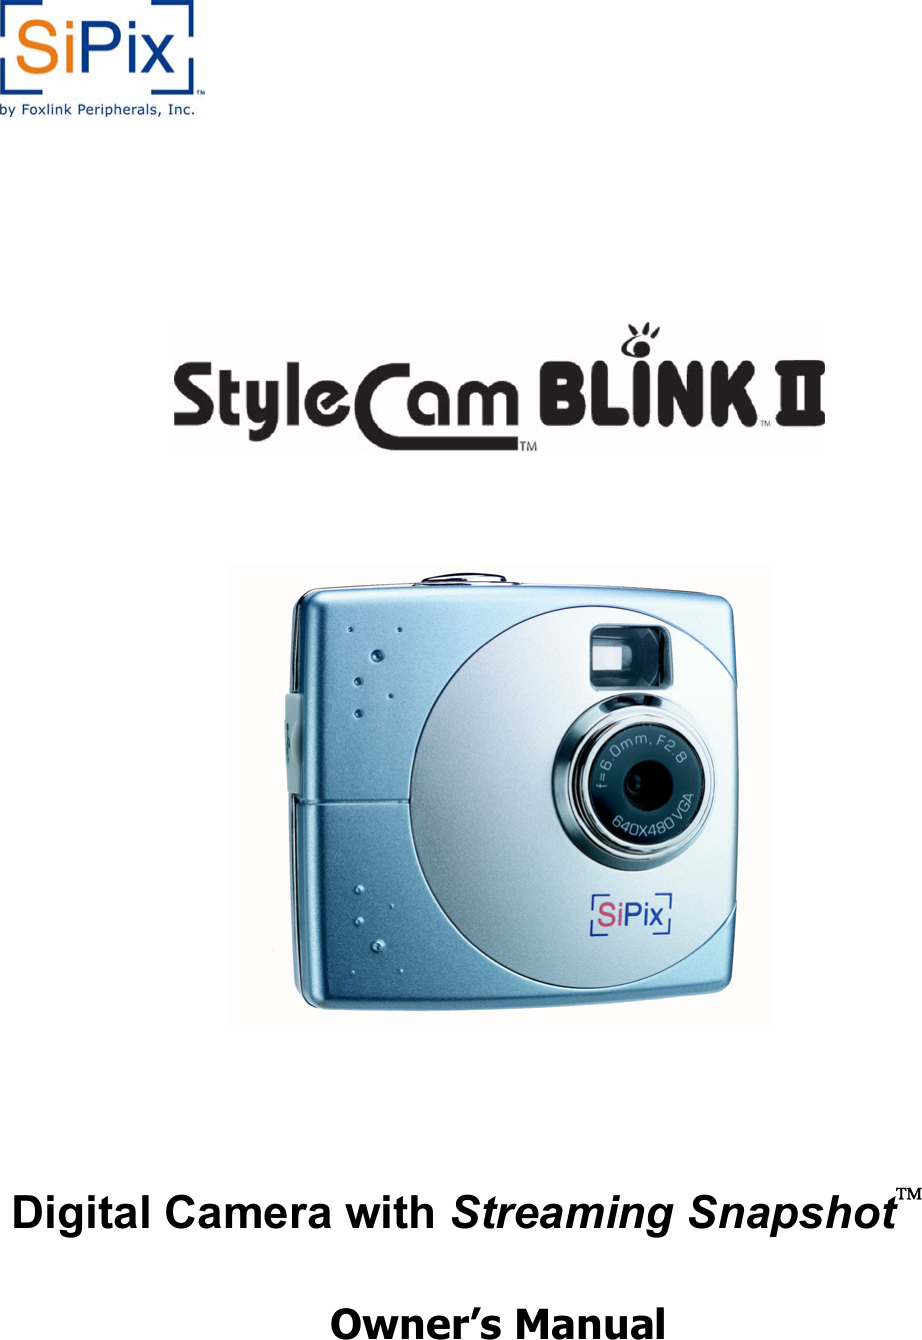 STYLECAM BLINK II DRIVERS FOR WINDOWS 8